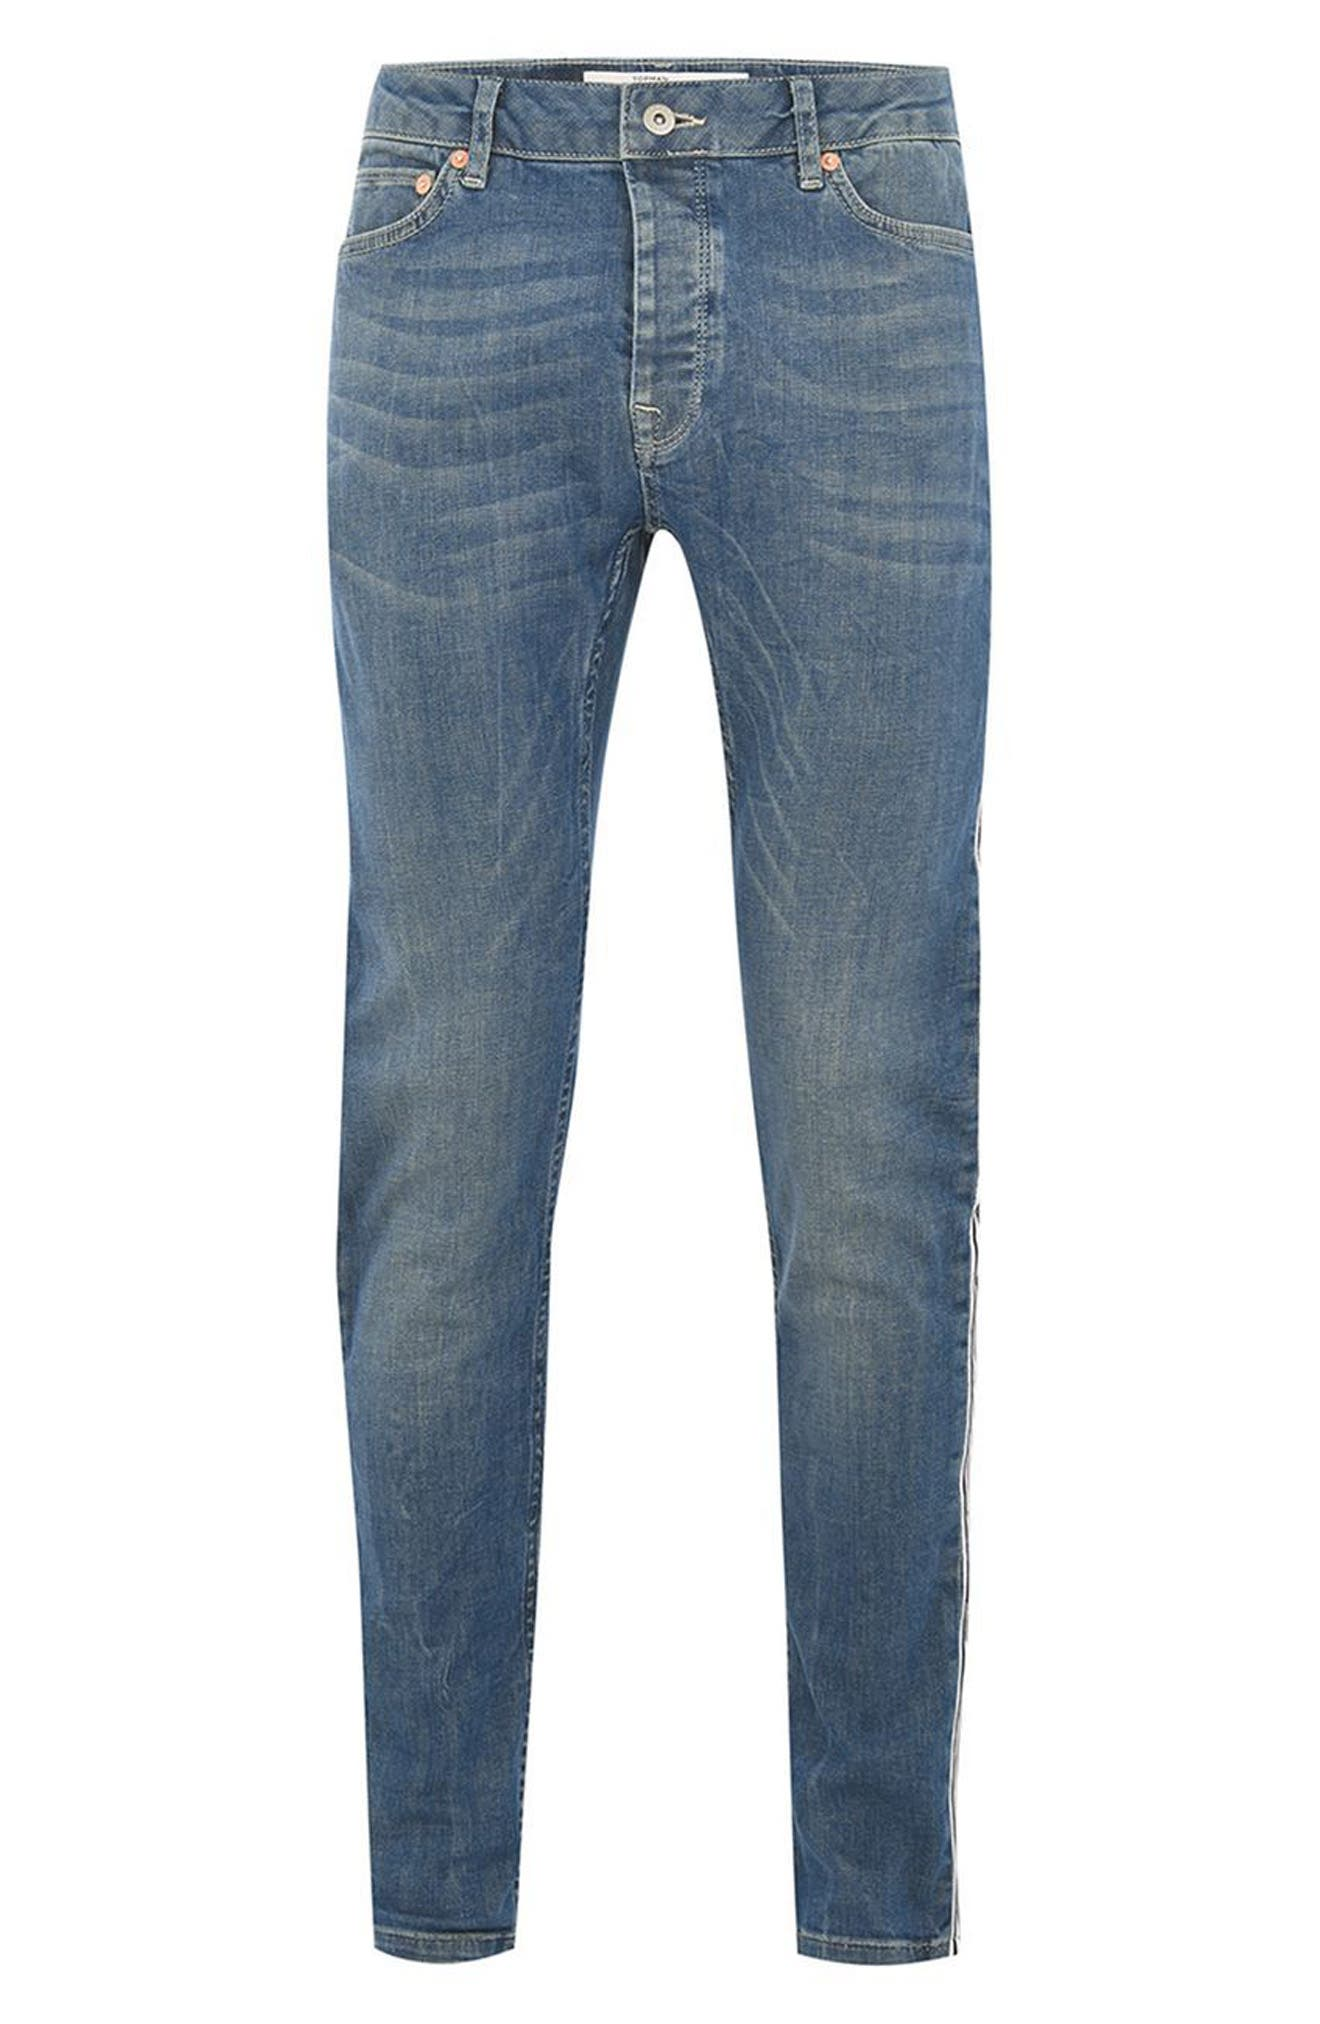 TOPMAN,                             Tape Stretch Skinny Fit Jeans,                             Alternate thumbnail 4, color,                             400